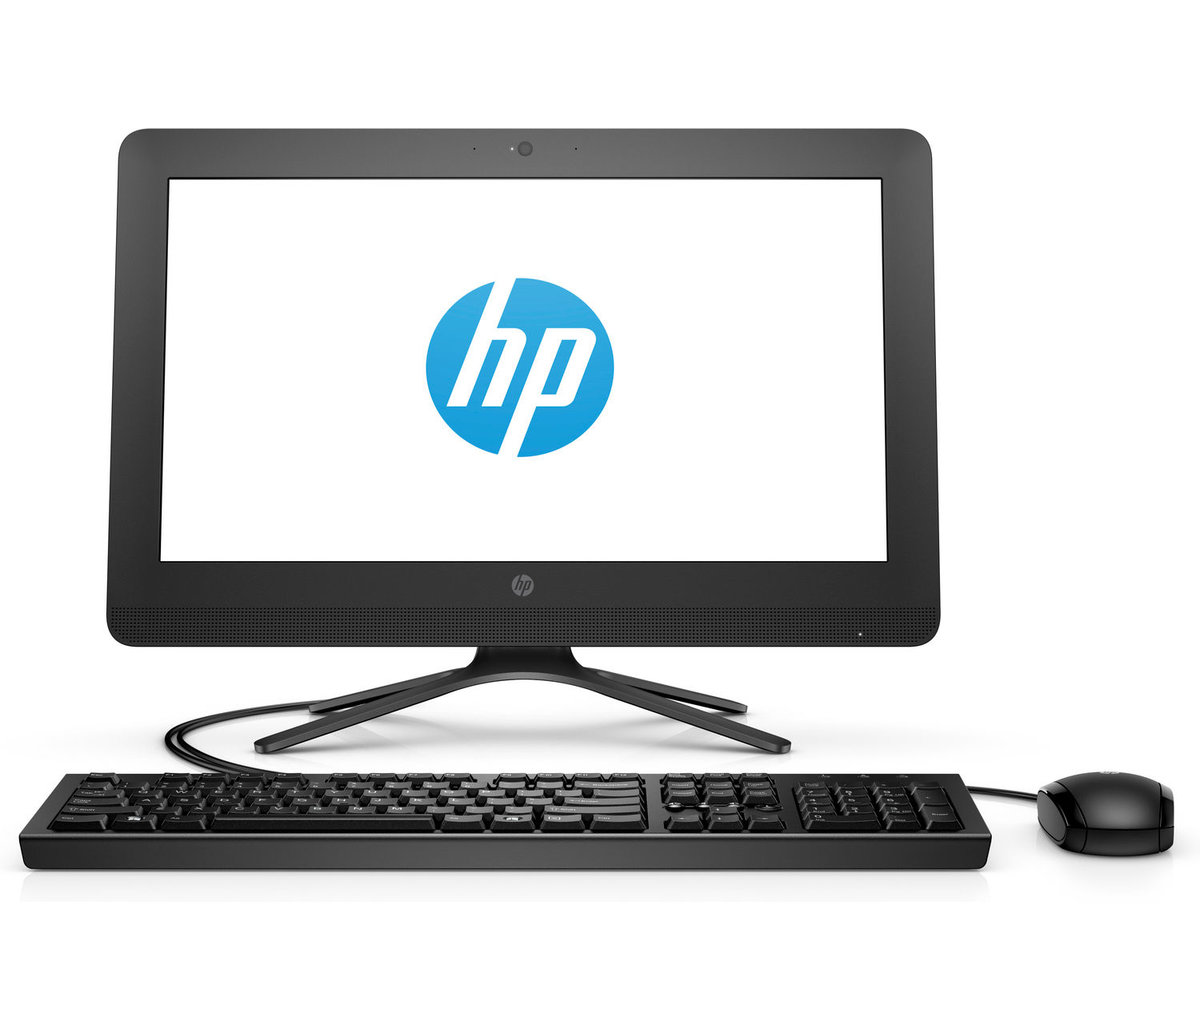 HP 22-C0014il 21.45-inch All-in-One Desktop (8th Gen Intel Core i5-8400T/4GB/1TB/DOS/Integrated Graphics), Jet Black